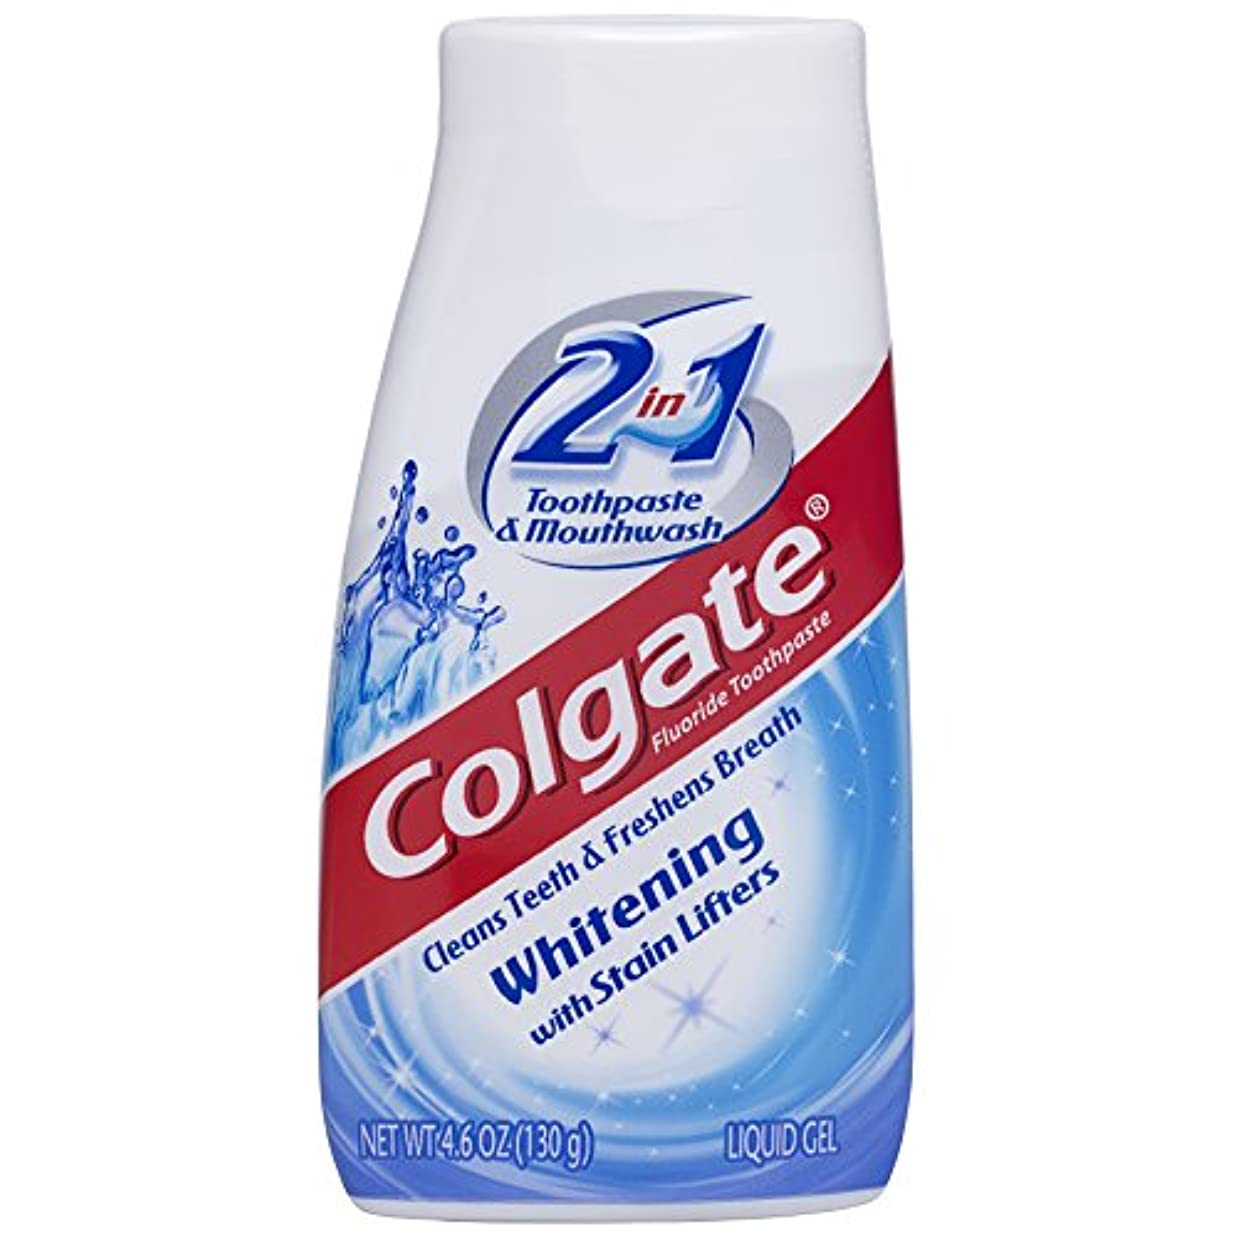 公園またはアナウンサー海外直送品Colgate 2 In 1 Toothpaste & Mouthwash Whitening, 4.6 oz by Colgate